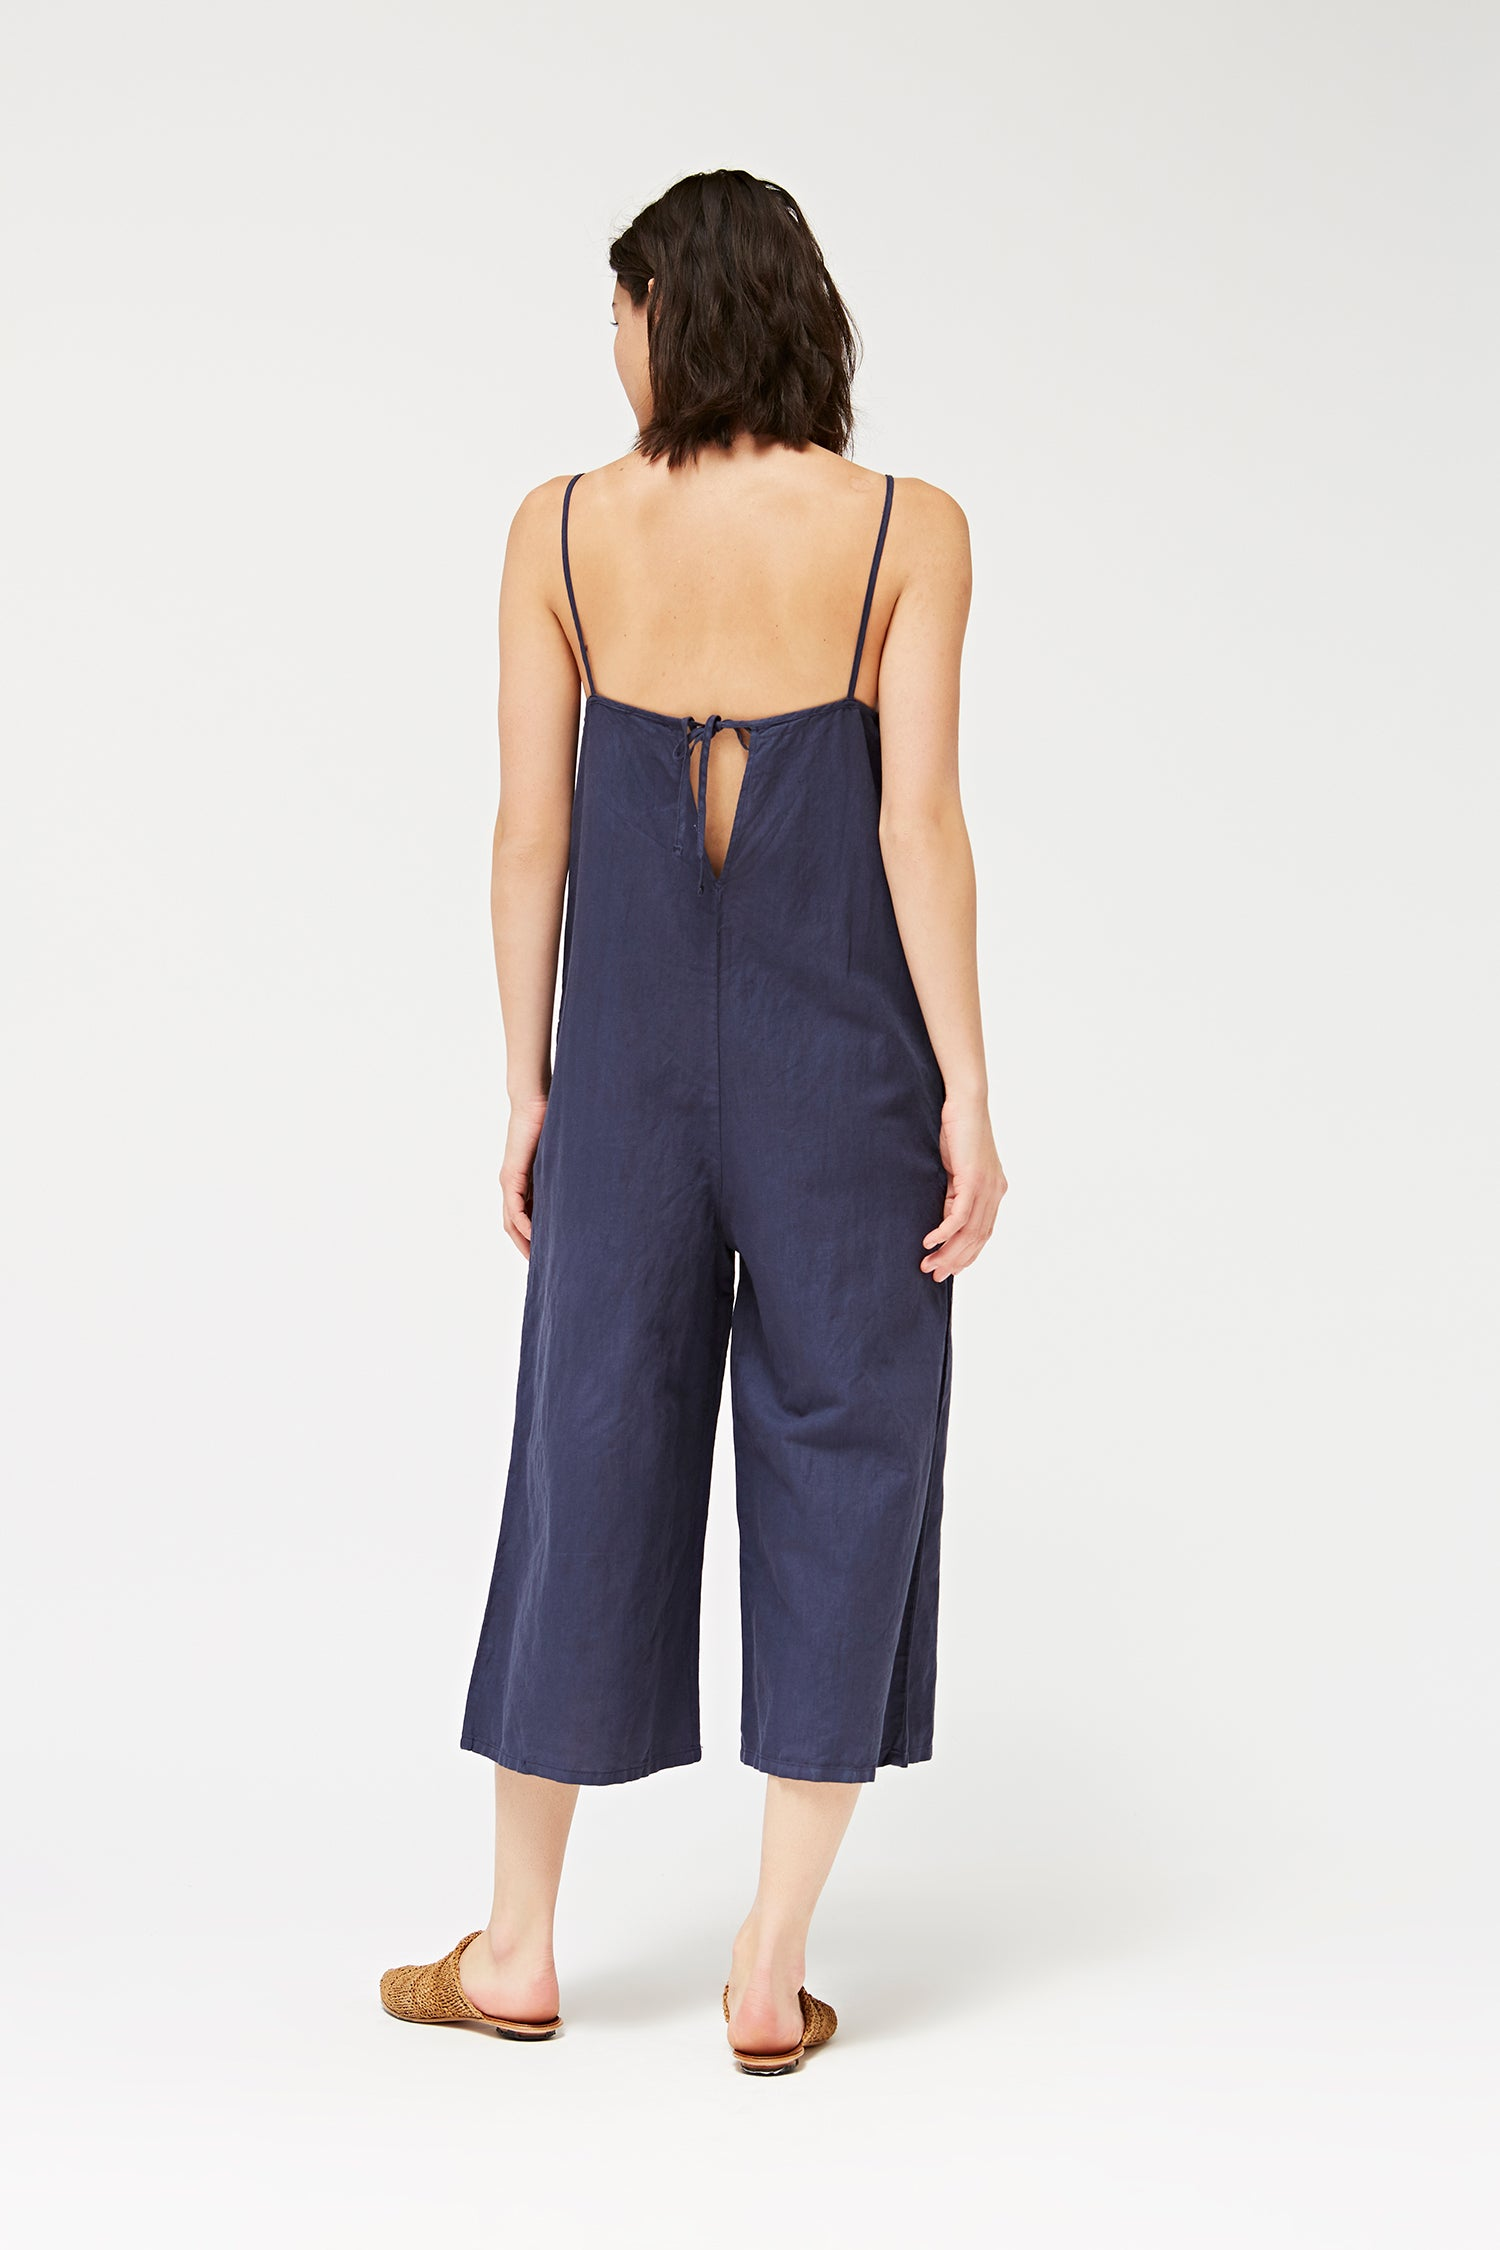 bab9035d8fb Coyote Jumpsuit - LACAUSA Clothing